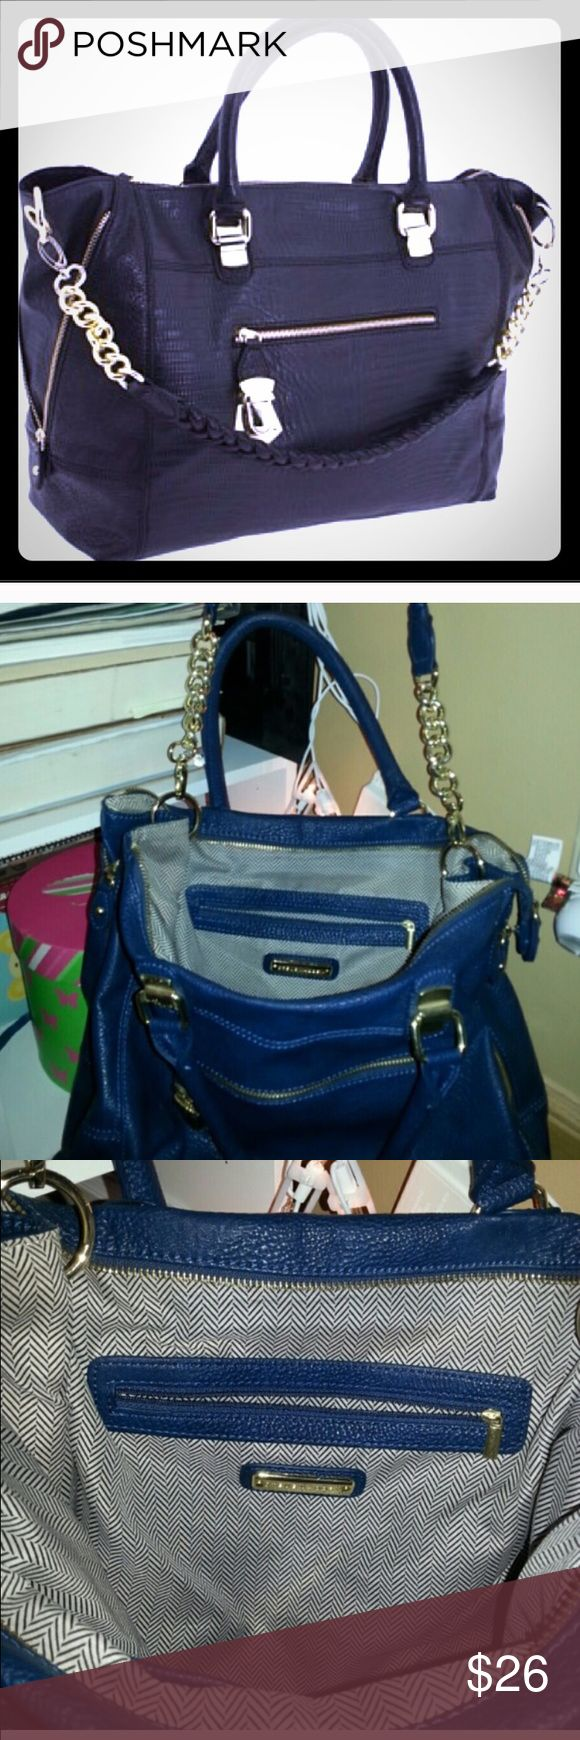 Steve Madden navy shoulder bag Gorgeous and barely used bag! Gently used with all interior and exterior in excellent condition. Deep navy, not black bag with braided strap. Steve Madden Bags Shoulder Bags